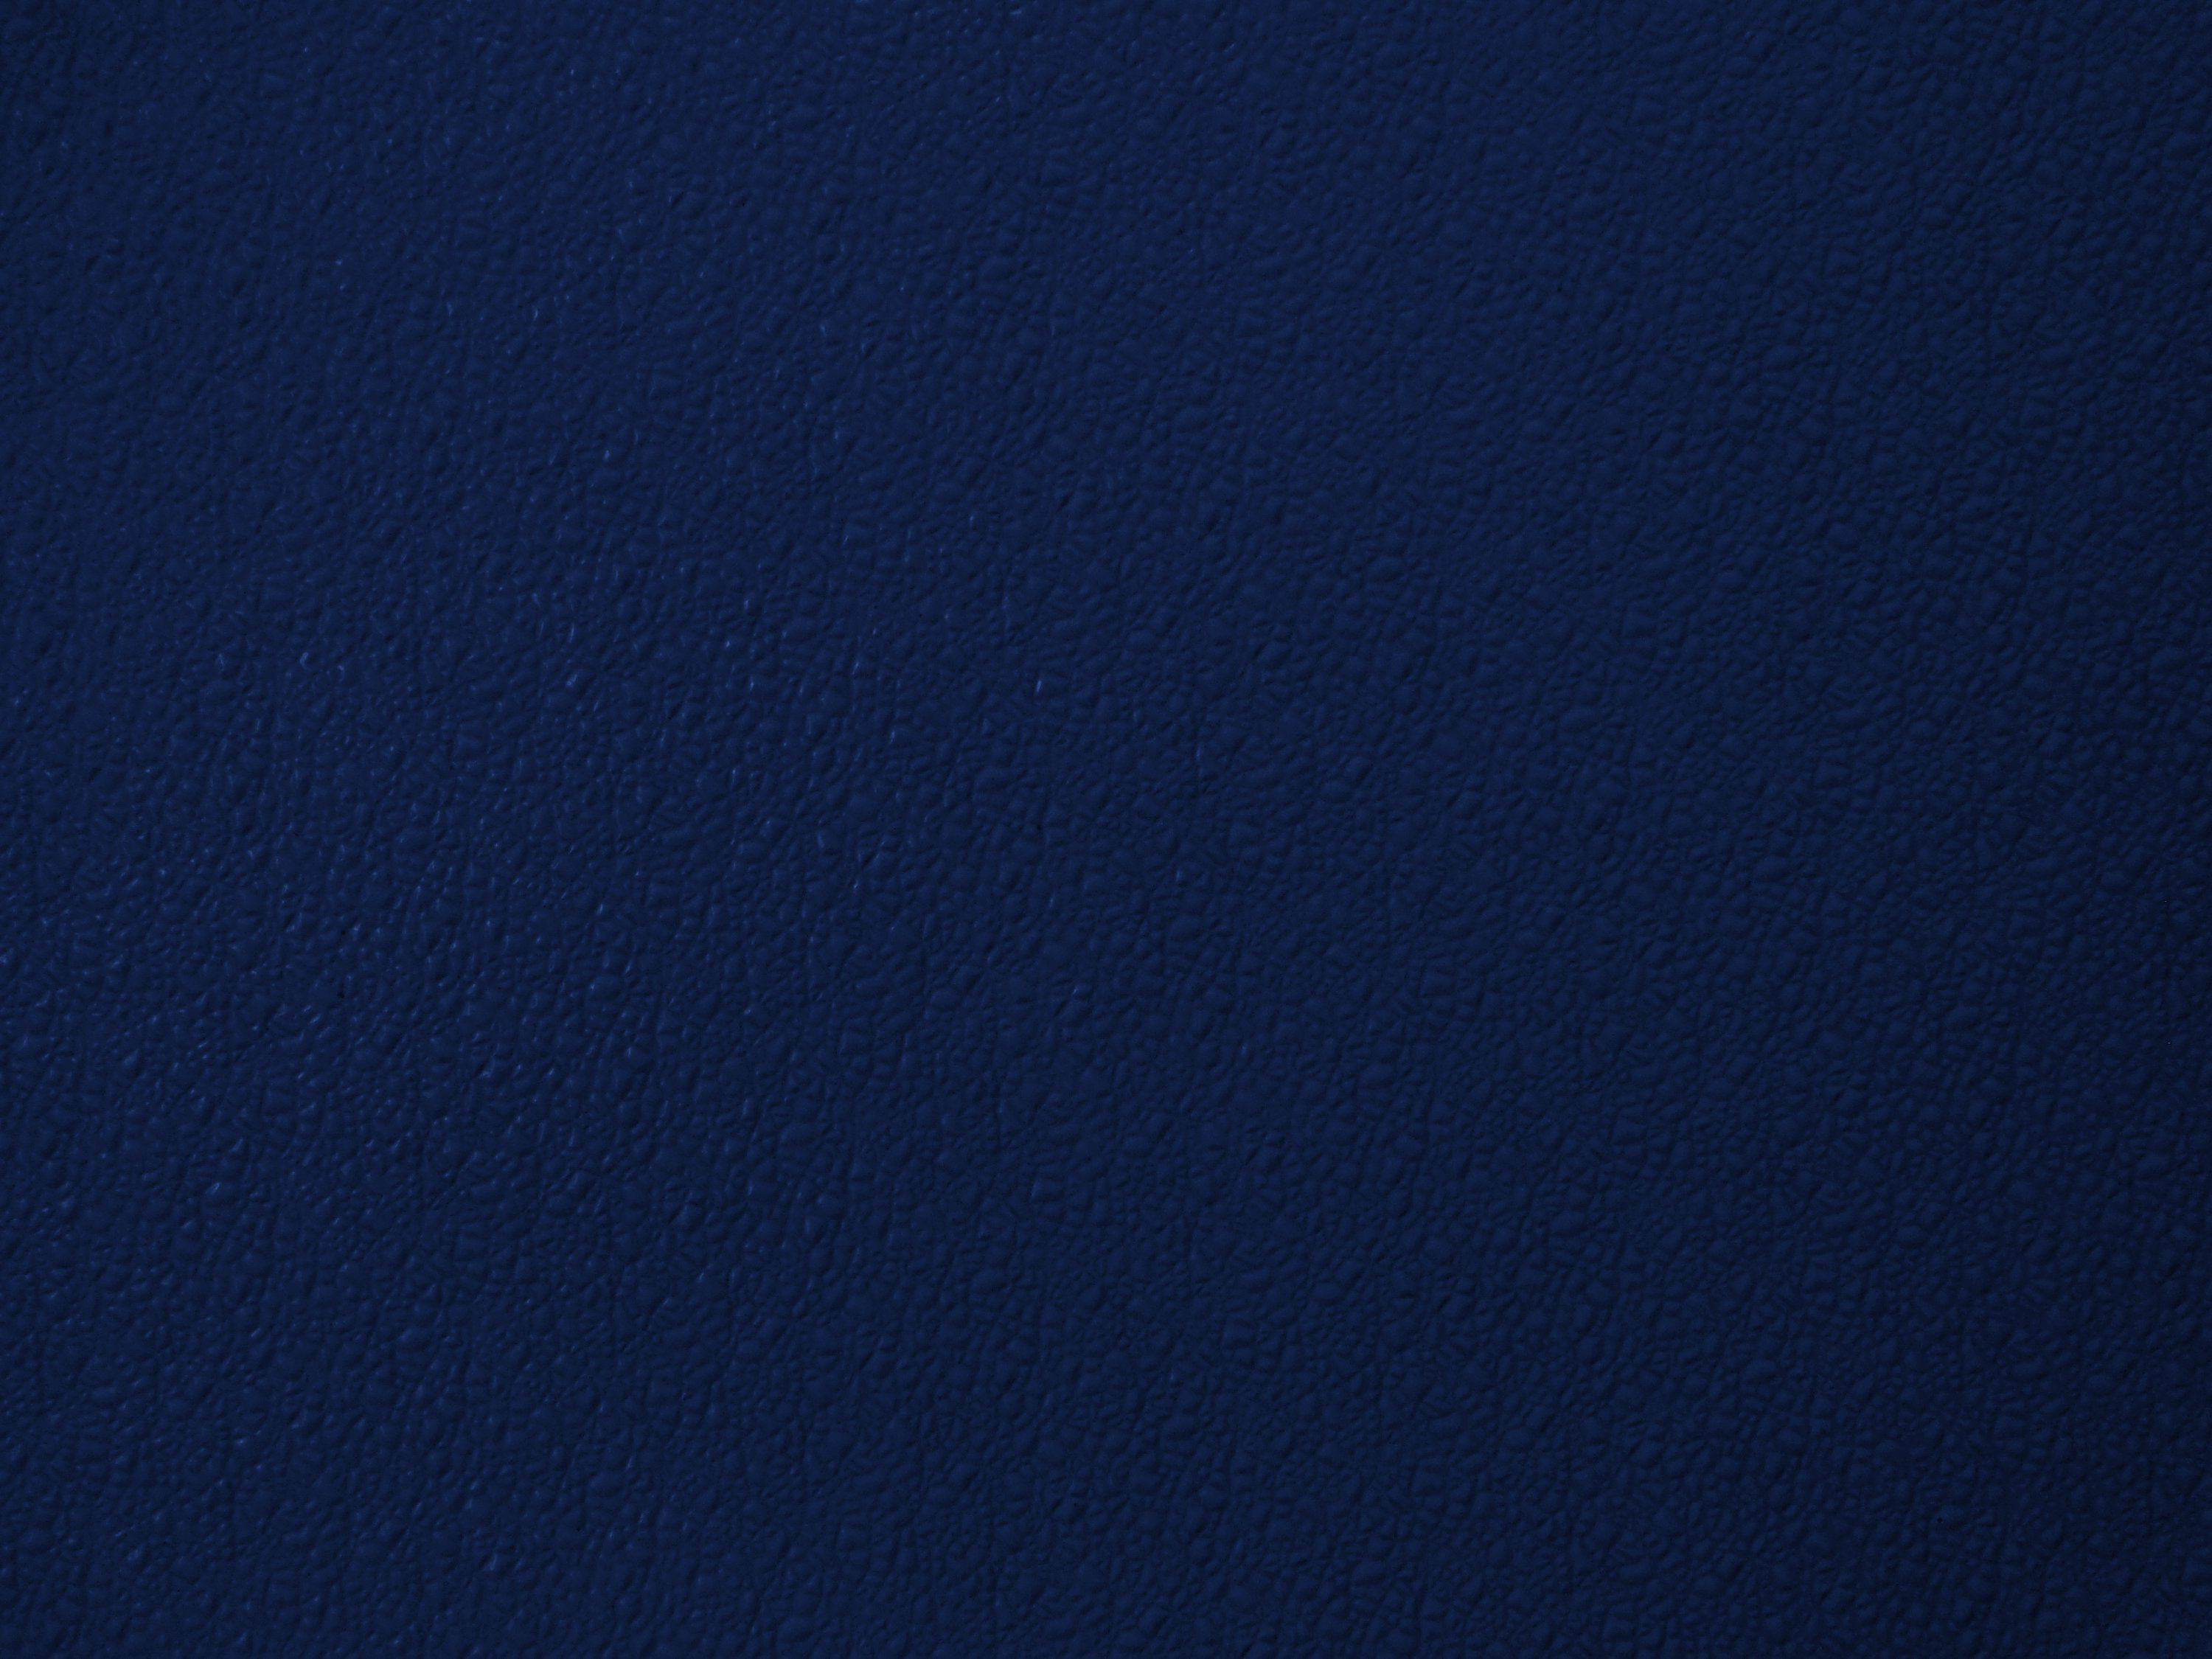 Bumpy navy blue plastic texture picture free photograph Navy purple color